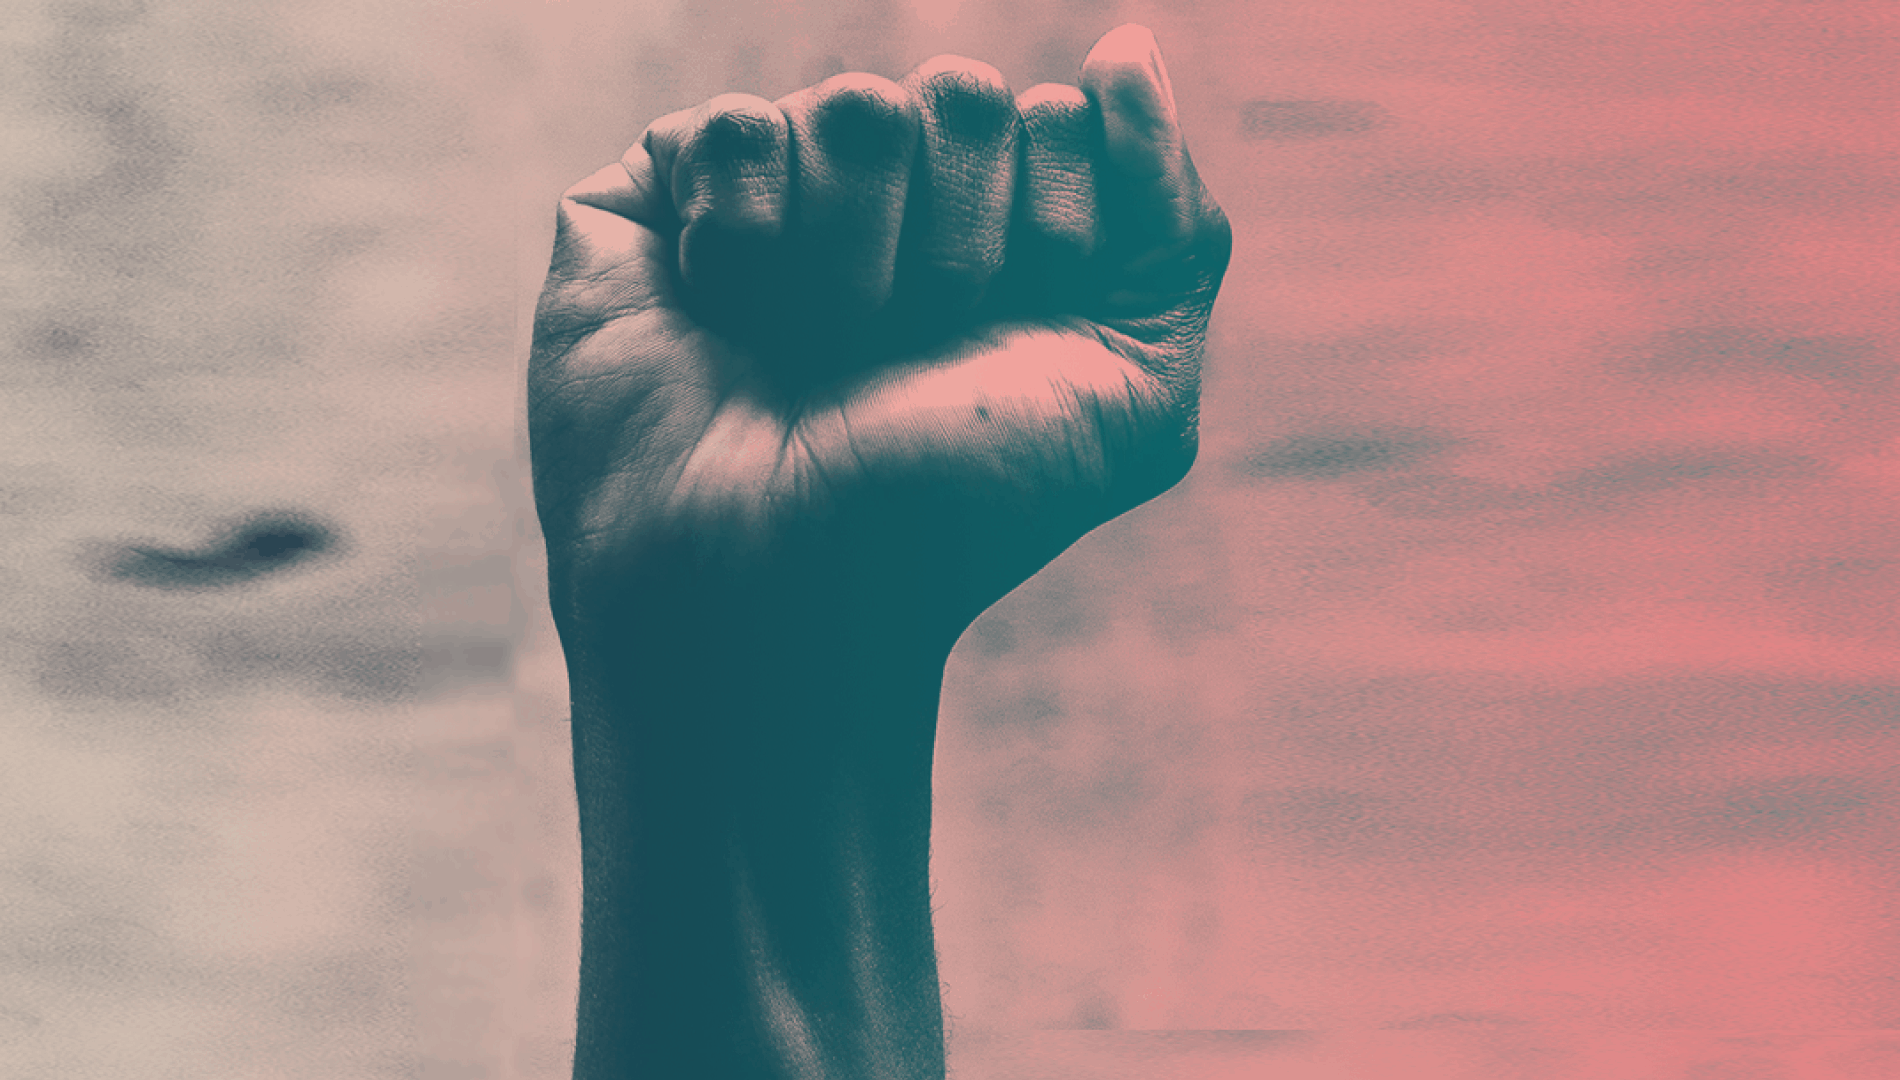 Raised clenched fist - symbolic of movements